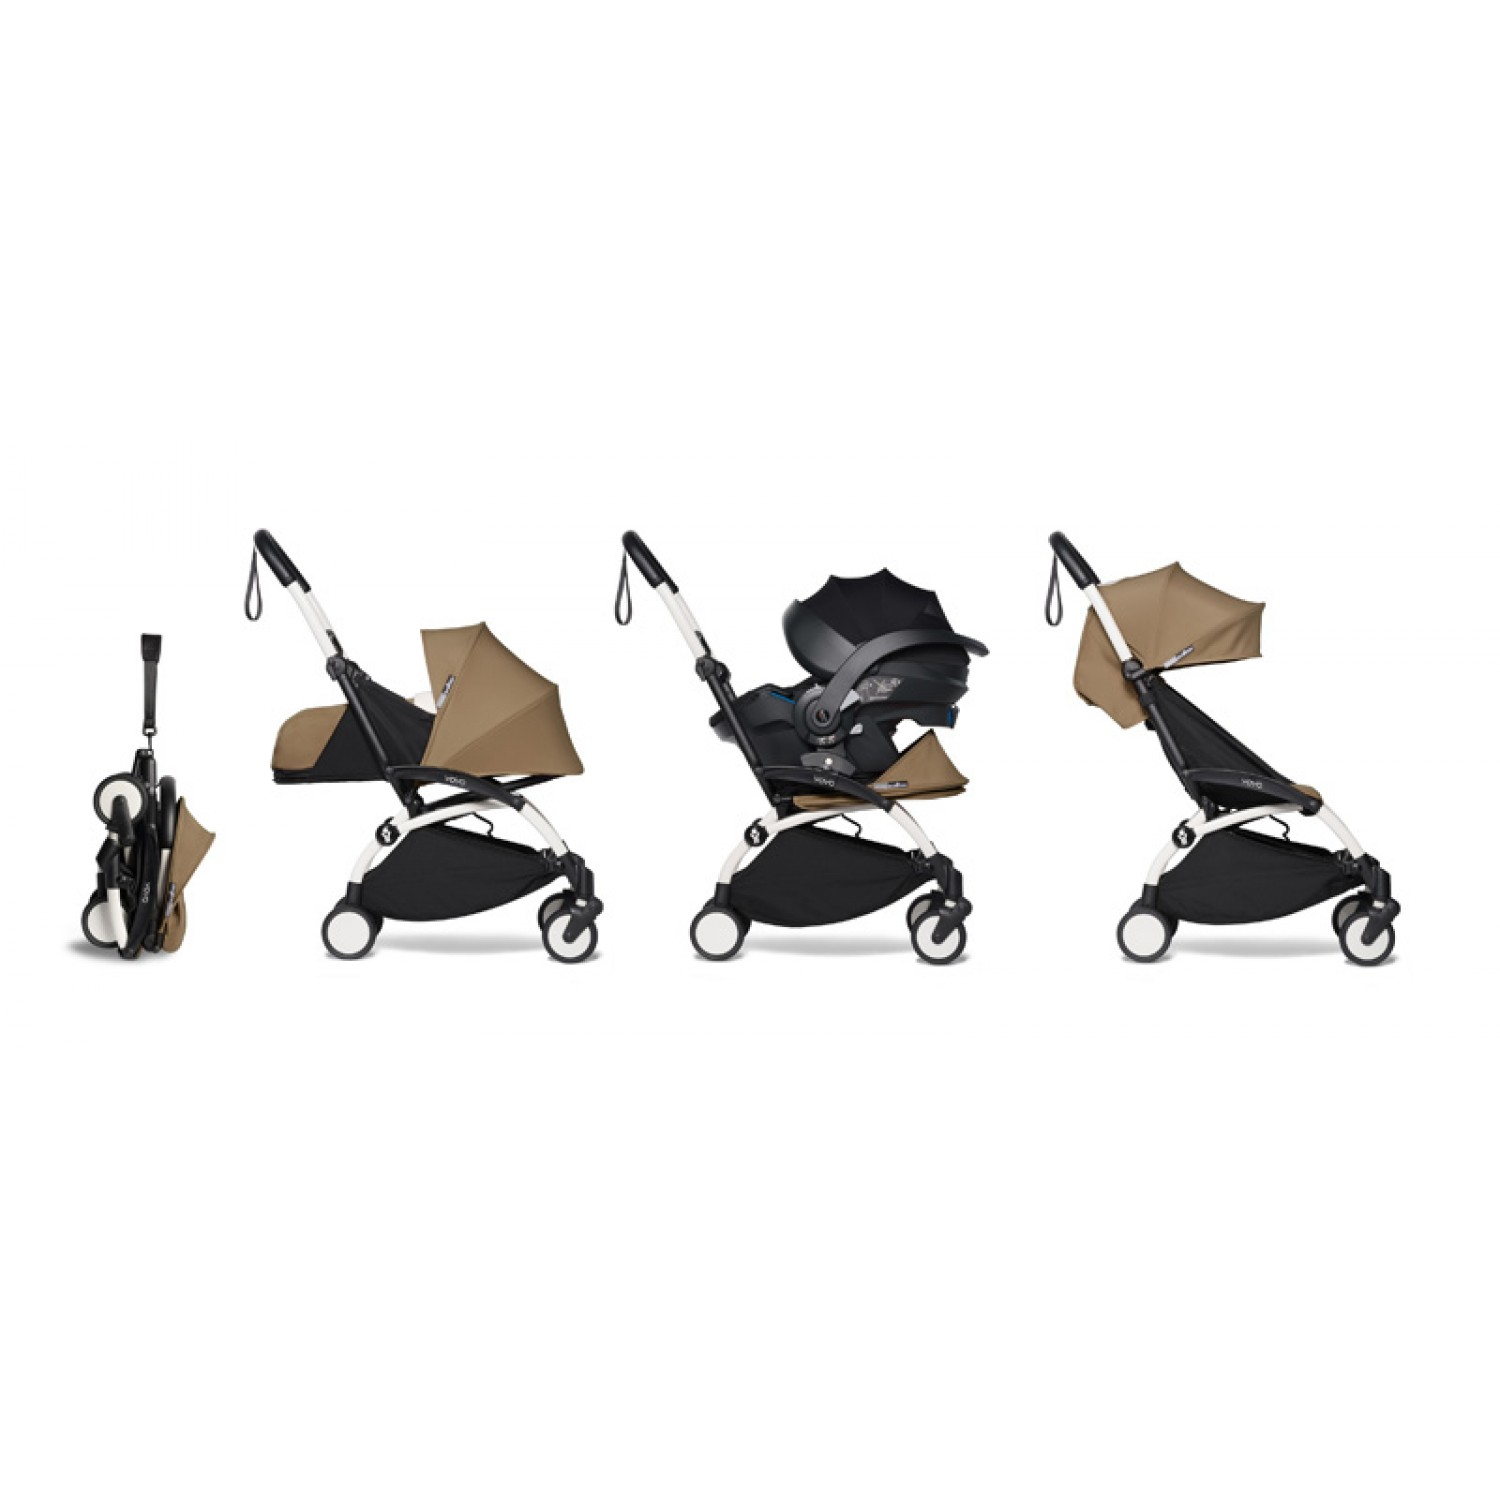 All-in-one BABYZEN stroller YOYO2 0+, car seat and 6+  | White Chassis Toffee